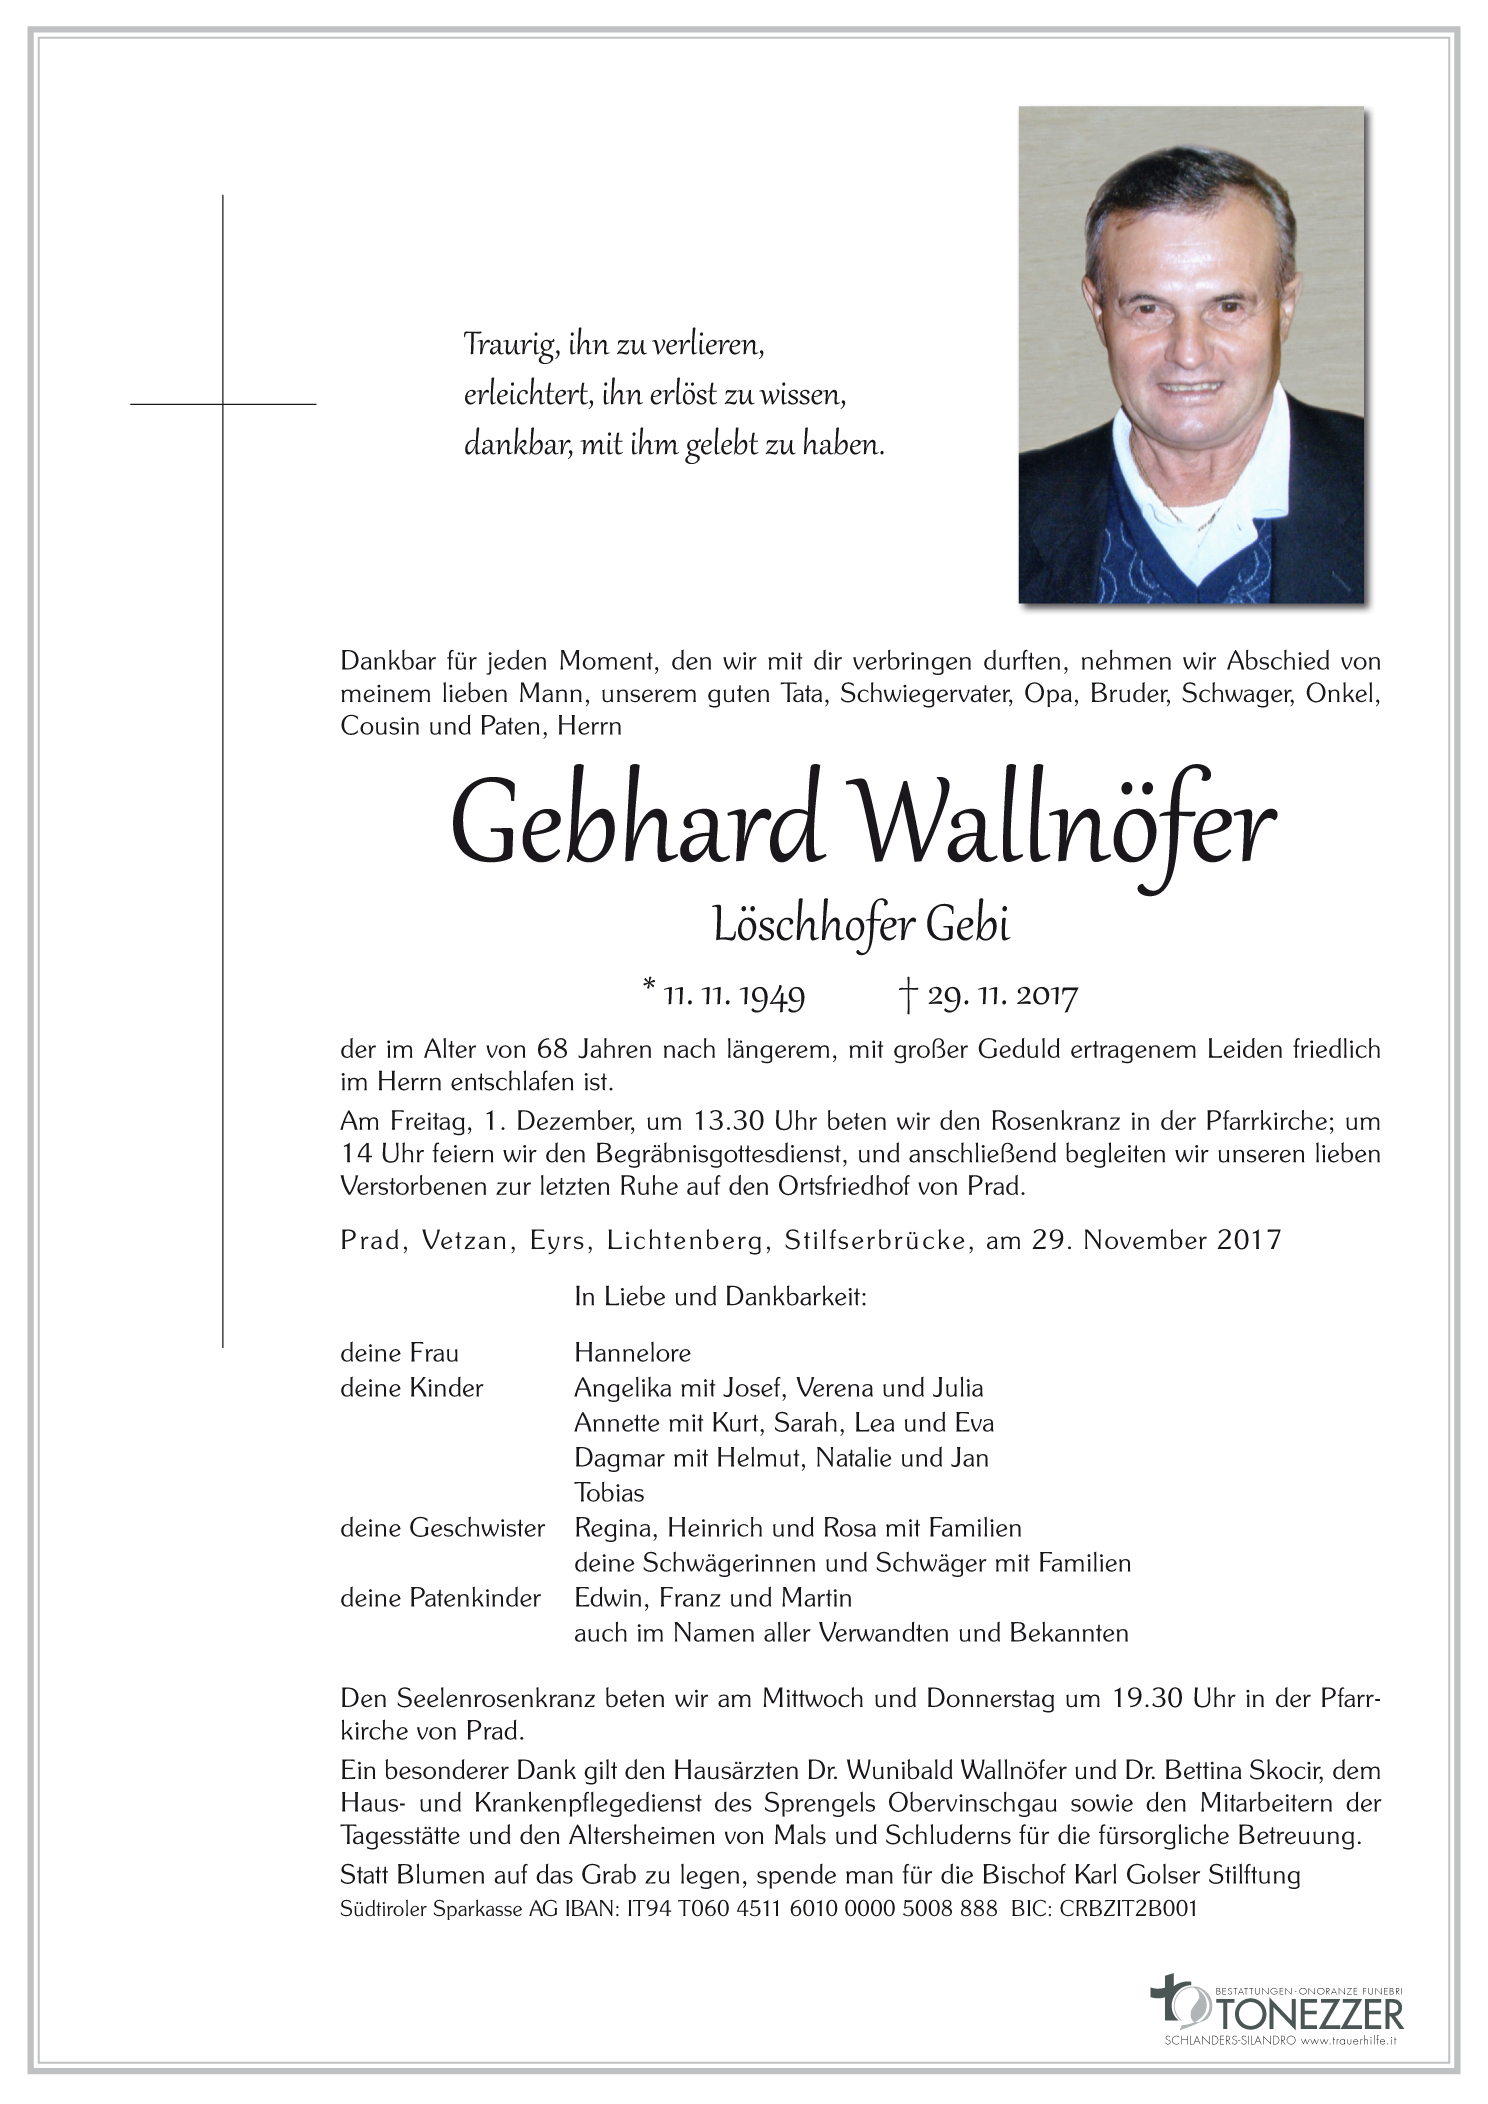 Gebhard Wallnöfer